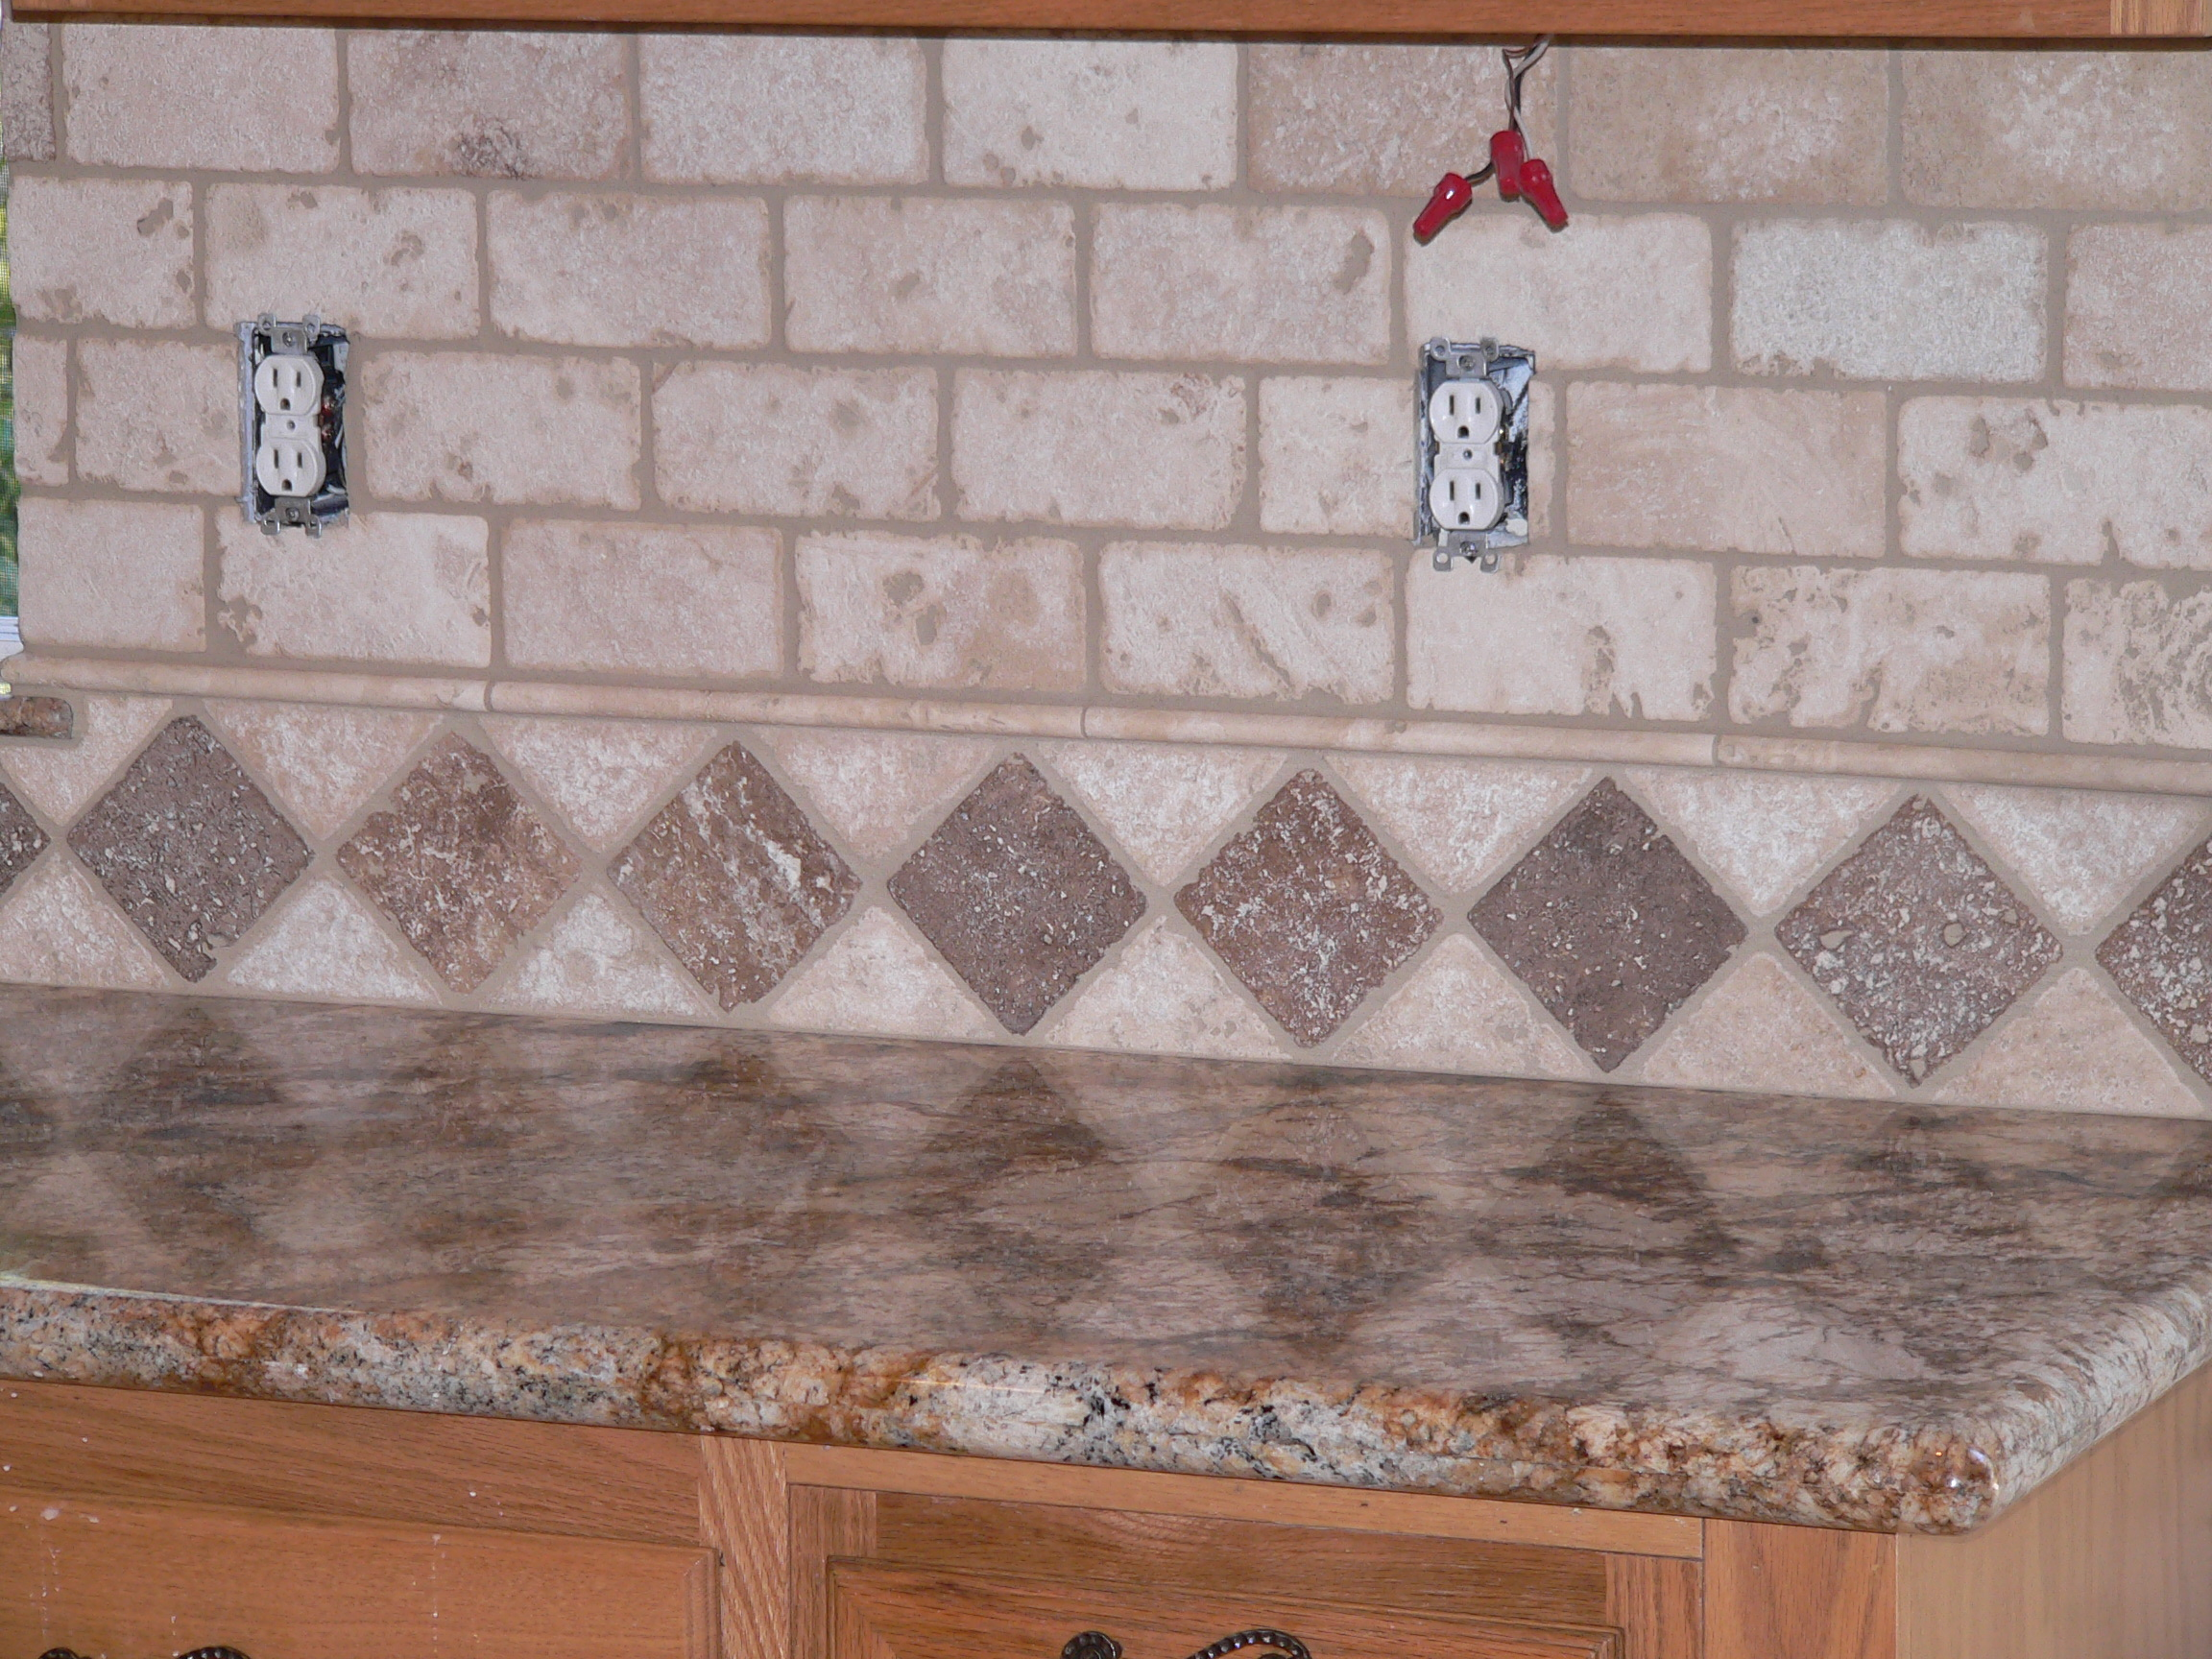 alfa img showing best grout for travertine backsplash